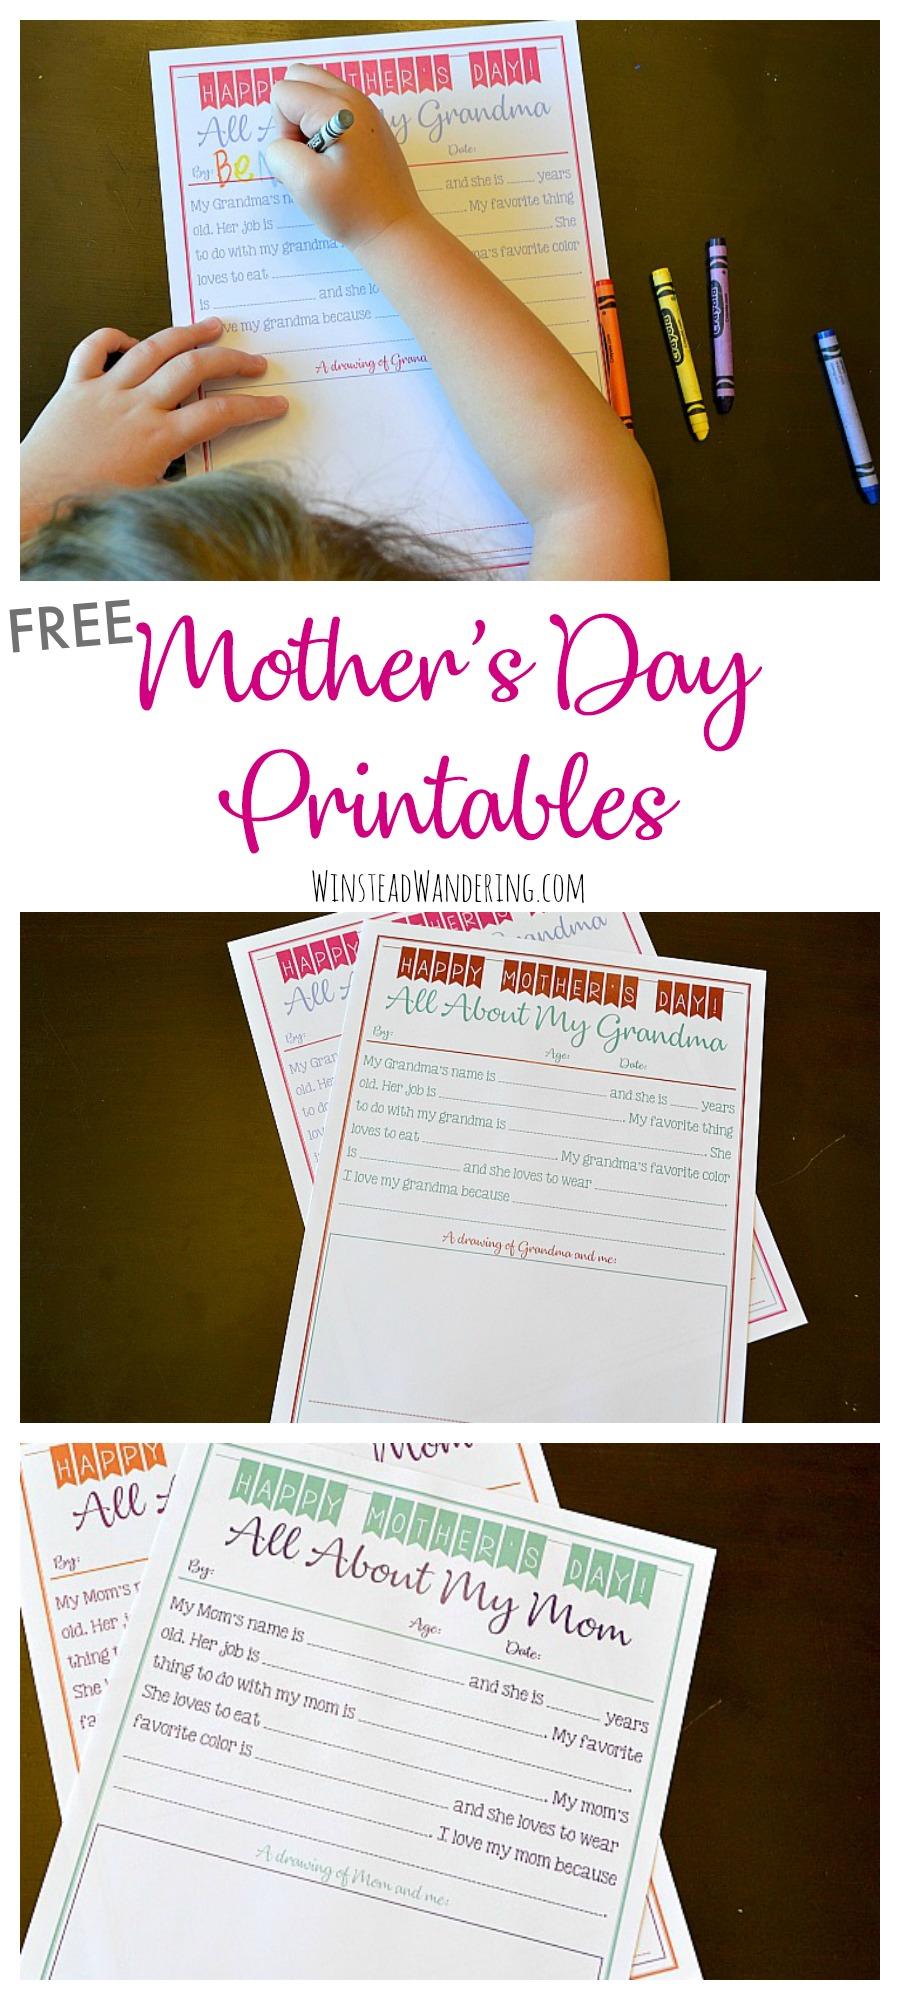 picture about All About My Grandma Printable known as Free of charge Moms Working day Printables (for grandma, as well!) Winstead